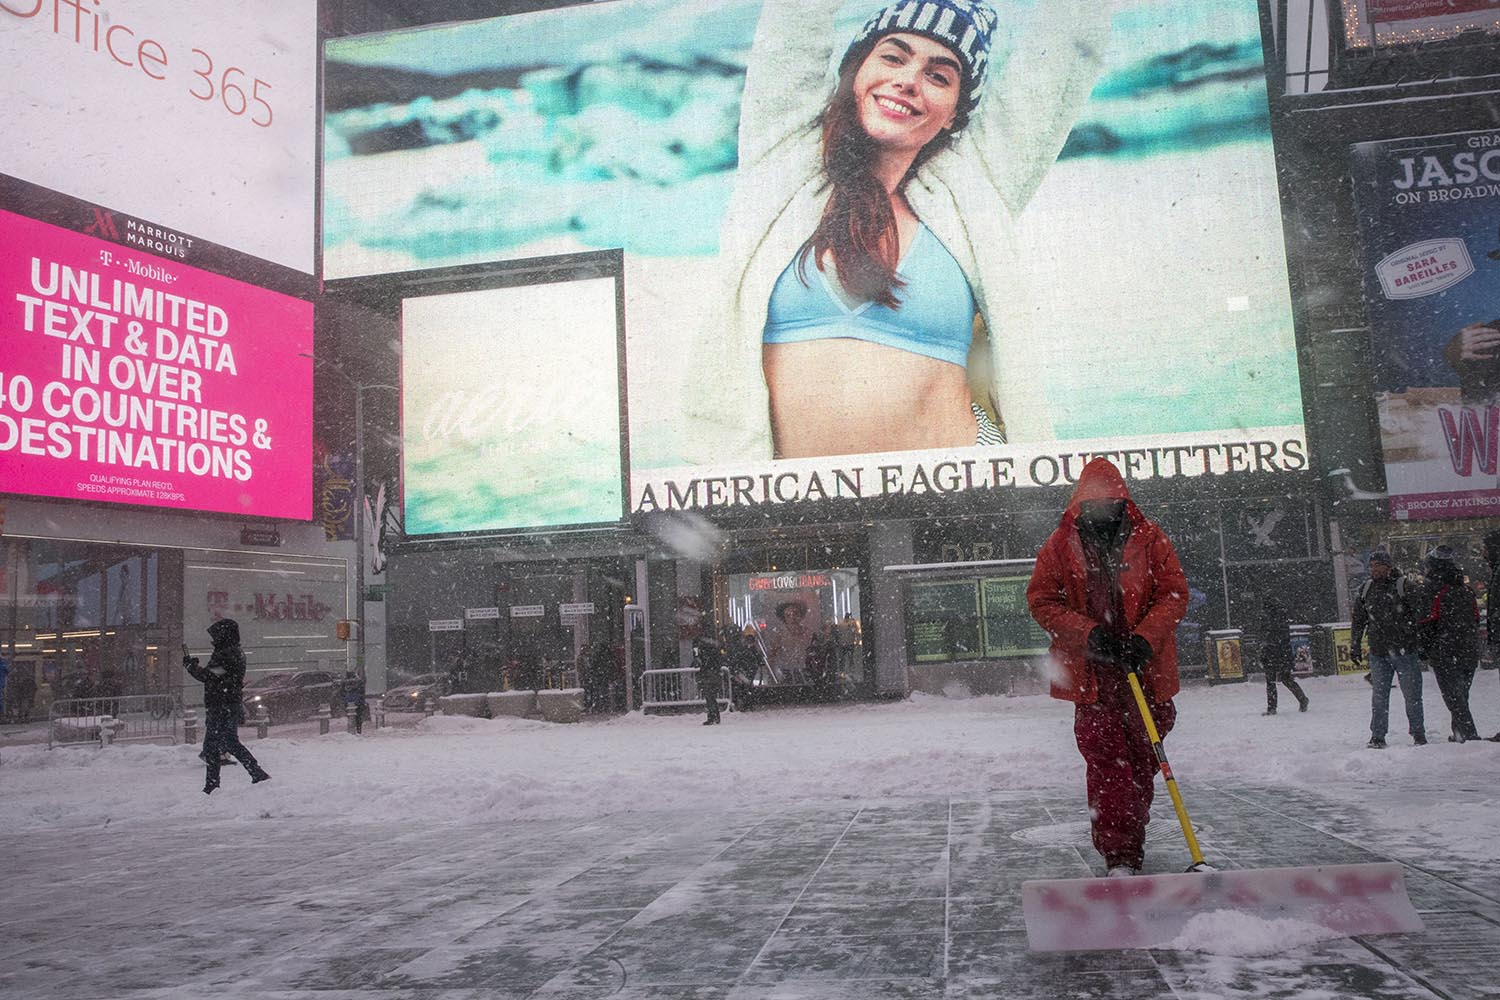 <div class='meta'><div class='origin-logo' data-origin='AP'></div><span class='caption-text' data-credit='AP Photo/Mary Altaffer'>A worker with the Times Square alliance clears snow from the pedestrian walkway, Thursday, Jan. 4, 2018, in New York's Times Square.</span></div>